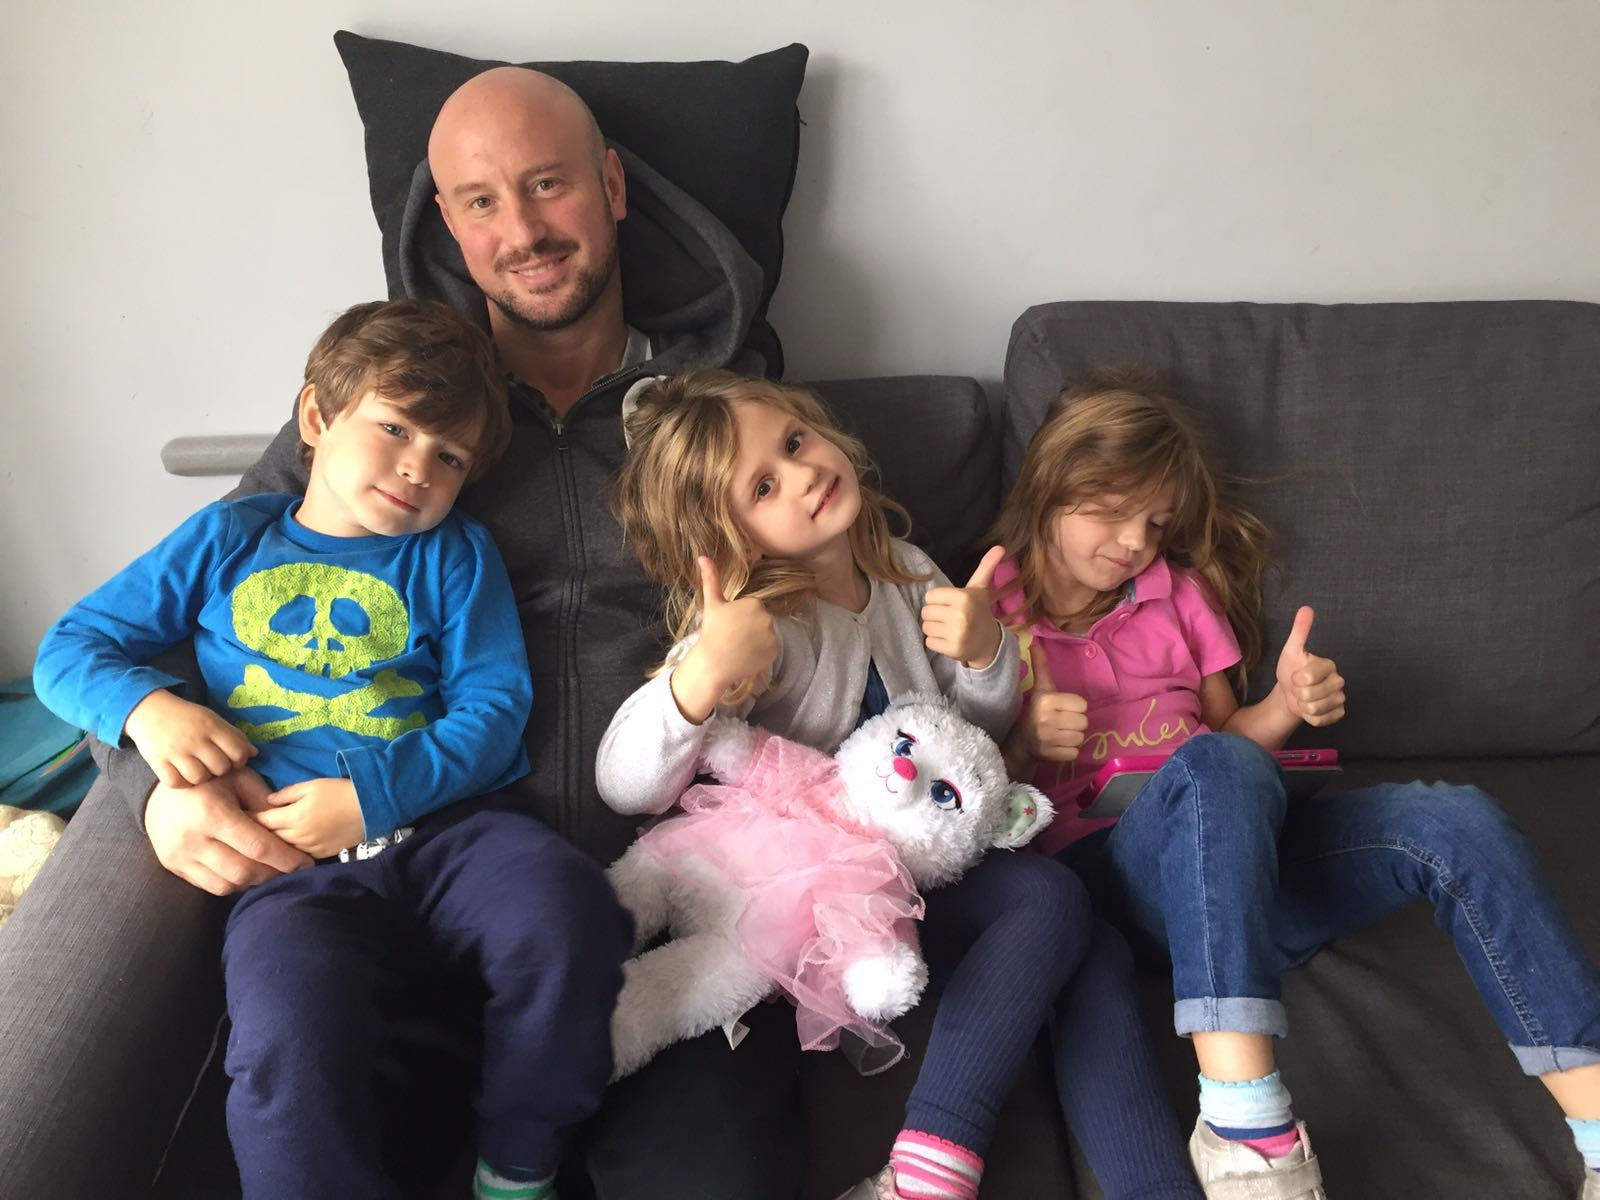 Layth with his 3 lovely kids (Bella, Sophia and Enzo)